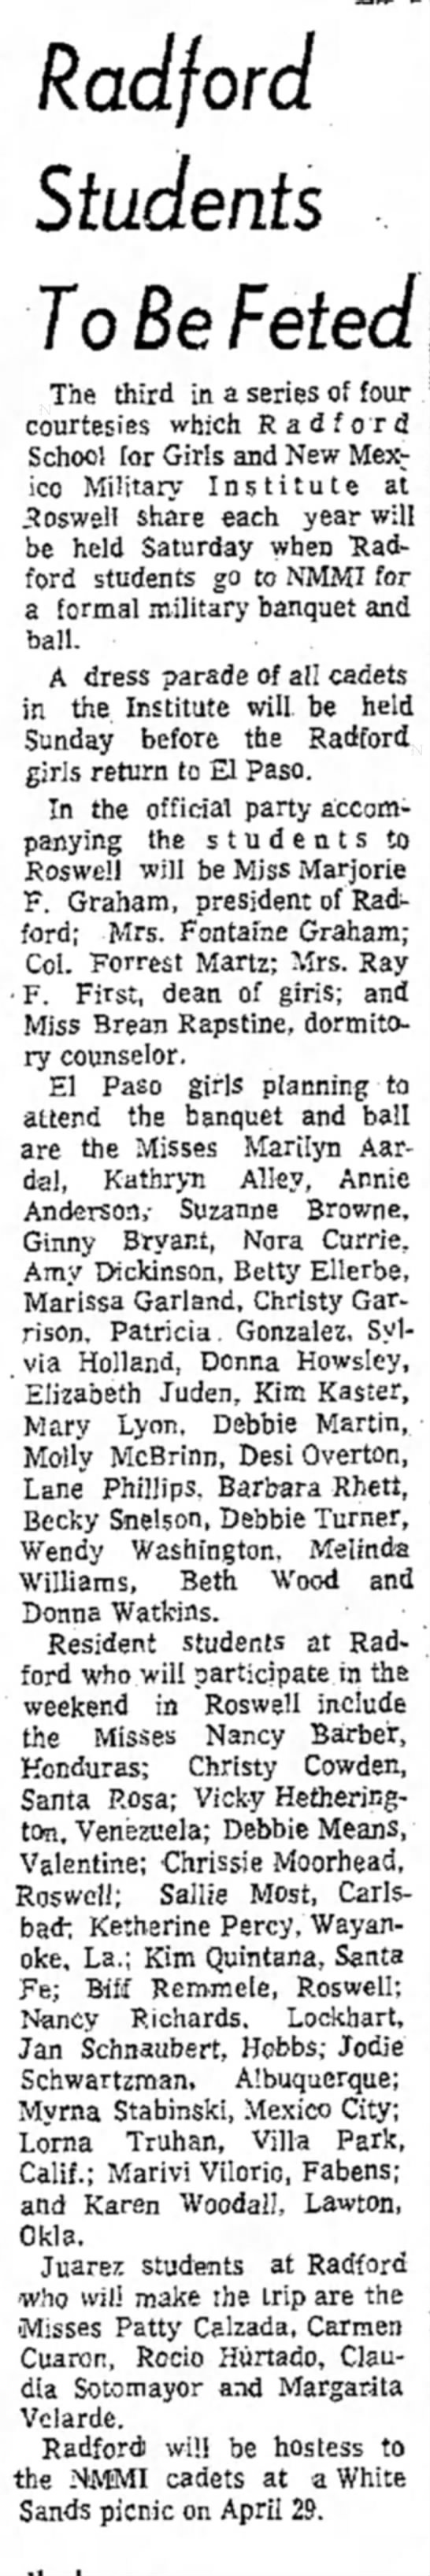 El Paso Herald Post 2 Mar 1972 - Radford Students To Be Feted The third in a...